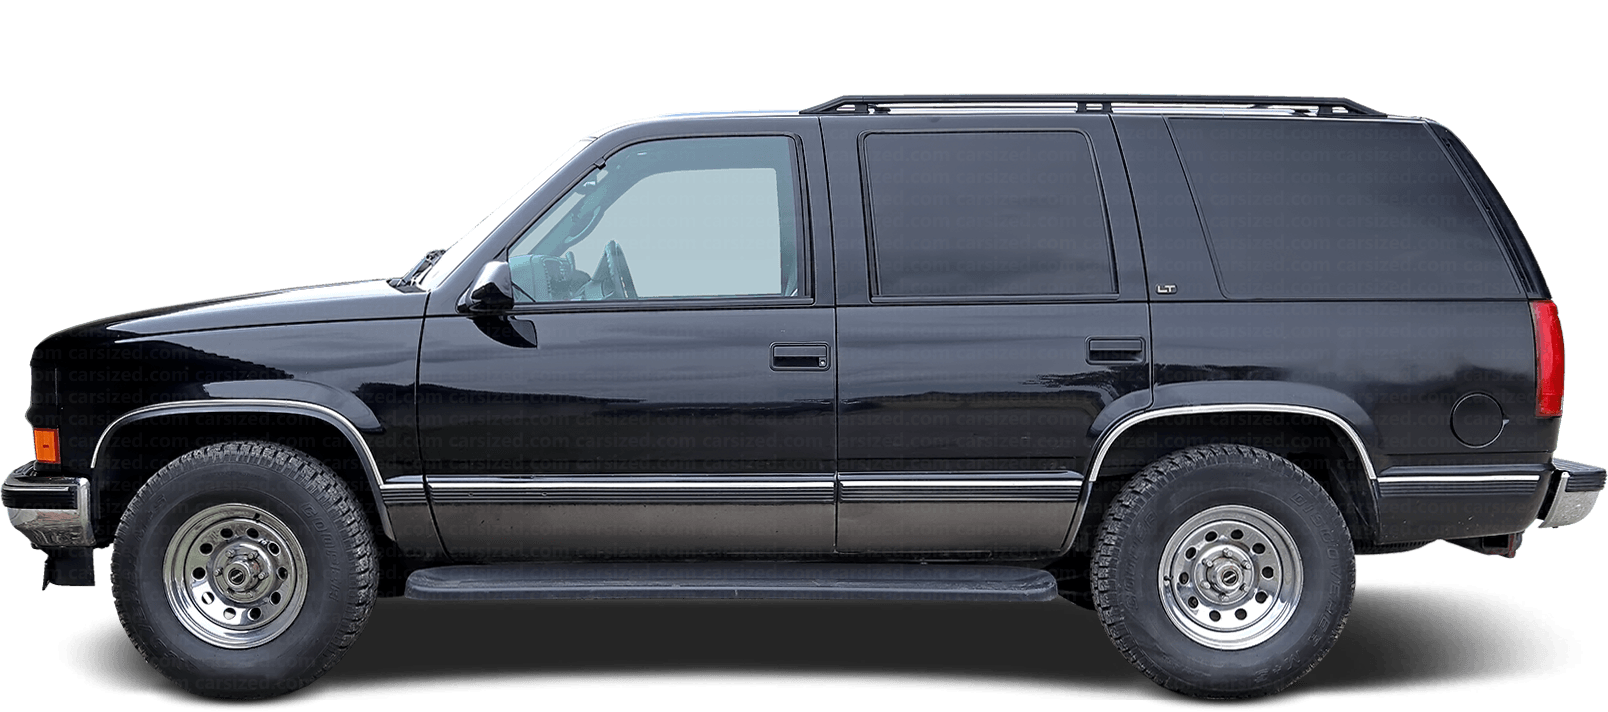 Chevrolet Tahoe SUV 1991-2000 Side View